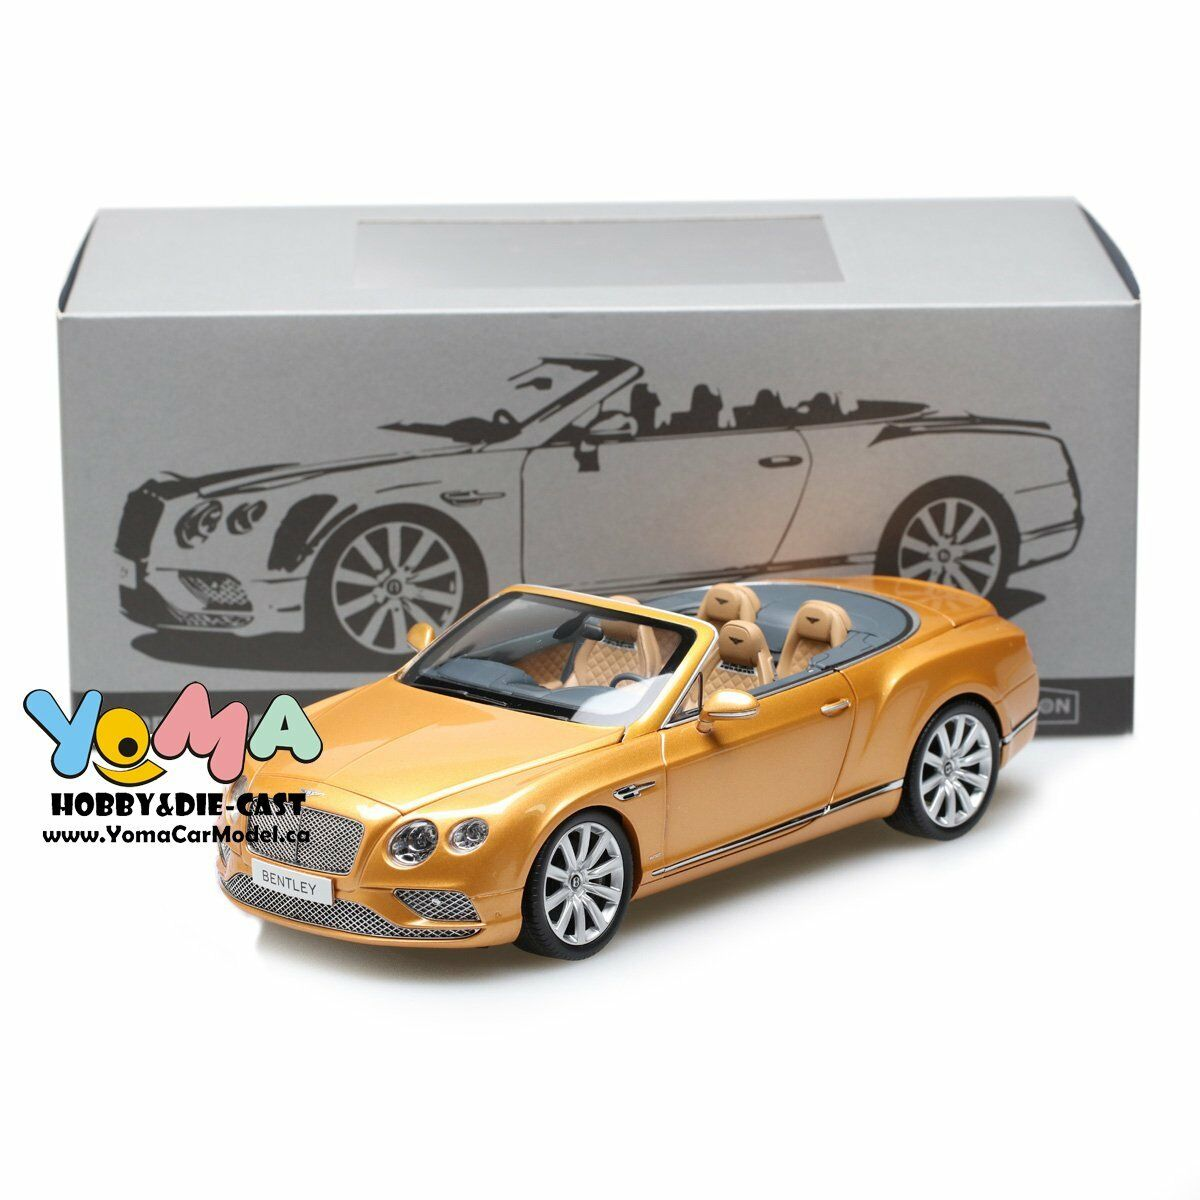 Paragon 1 18 2016 Bentley Continental GT Converdeible LHD oro PA-98232L